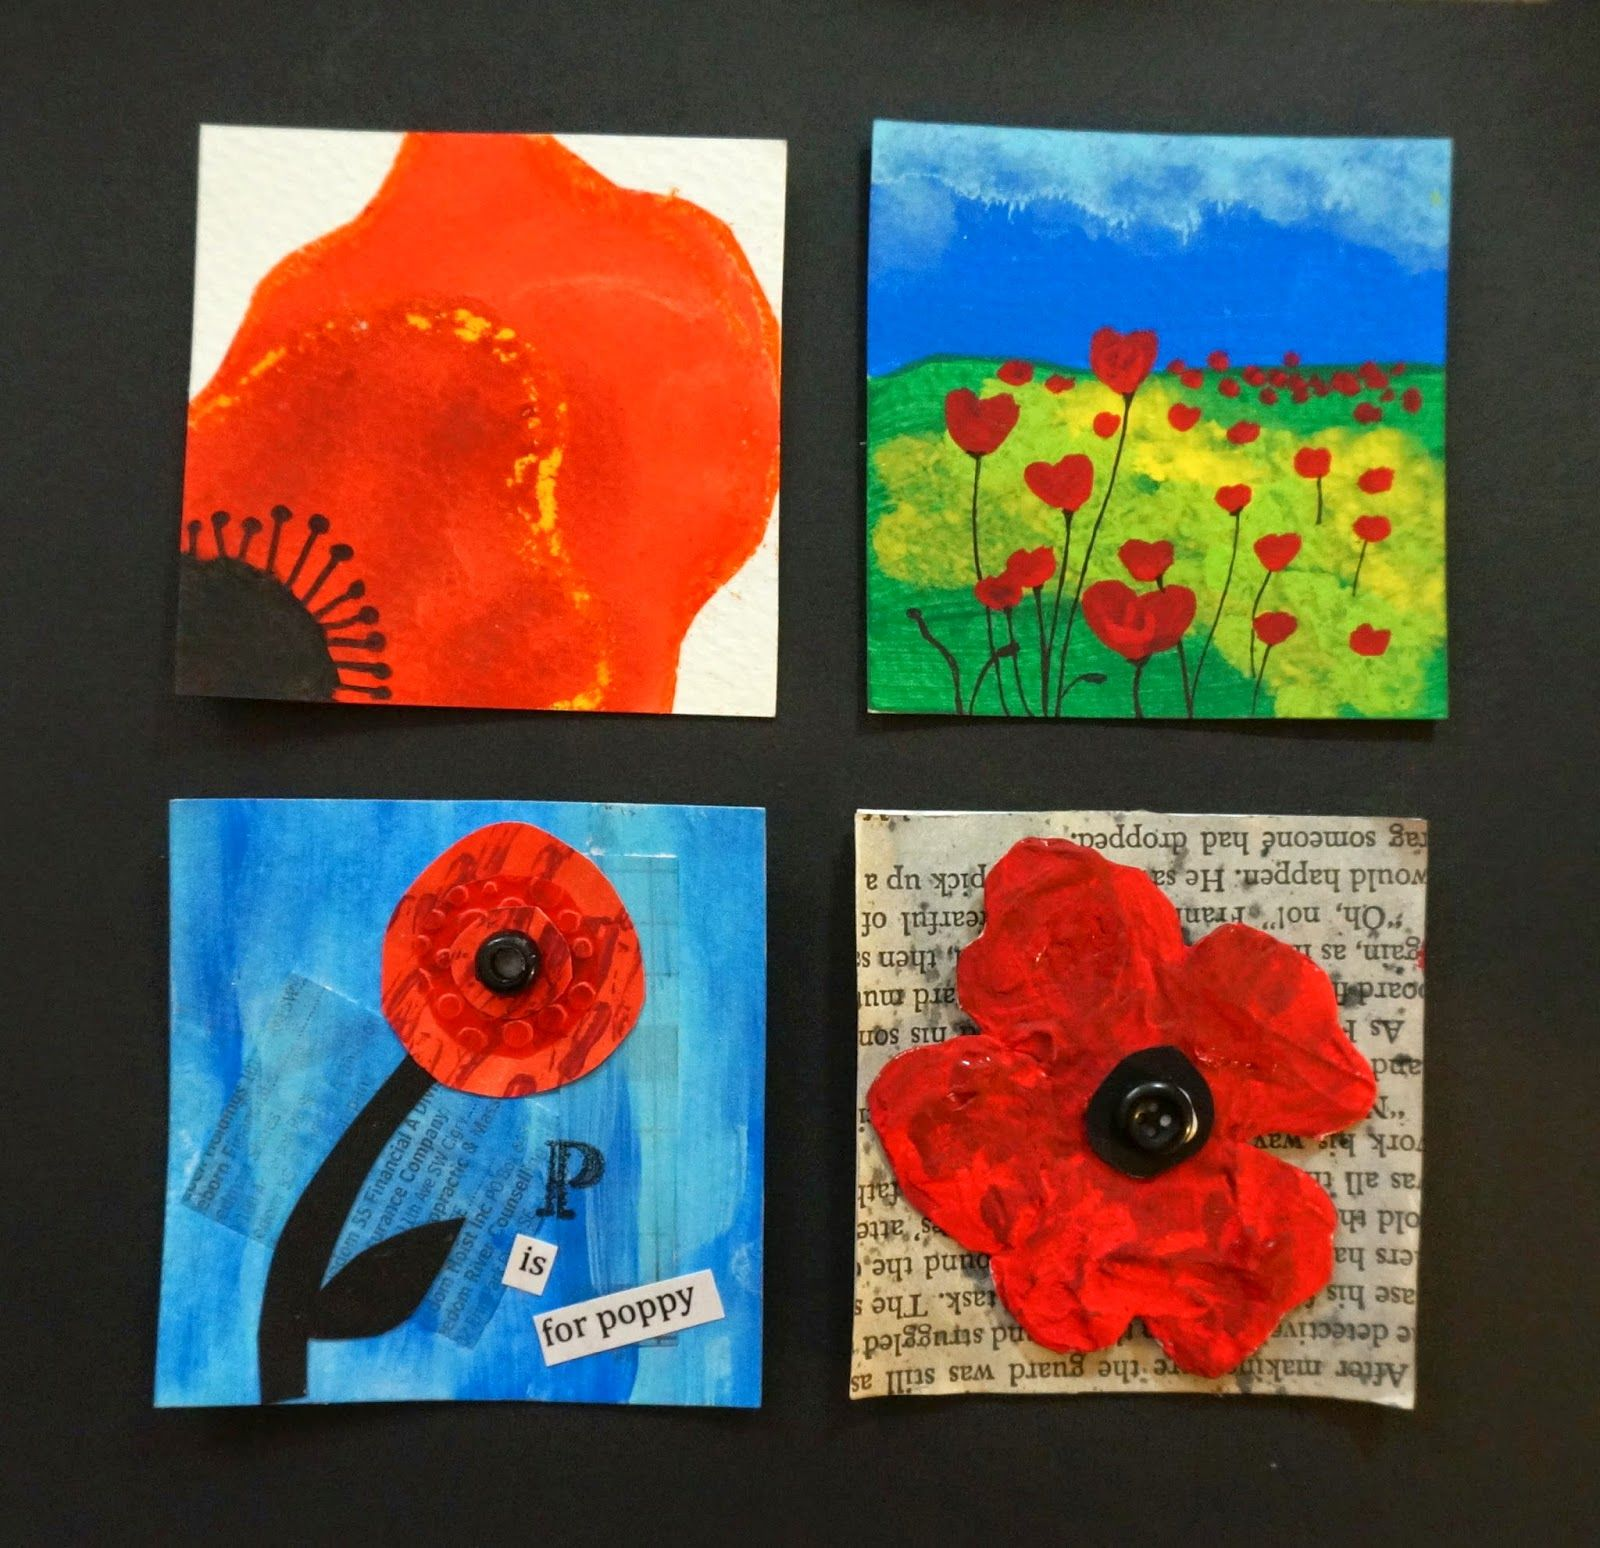 poppy inchies that artist woman artist and art lessons